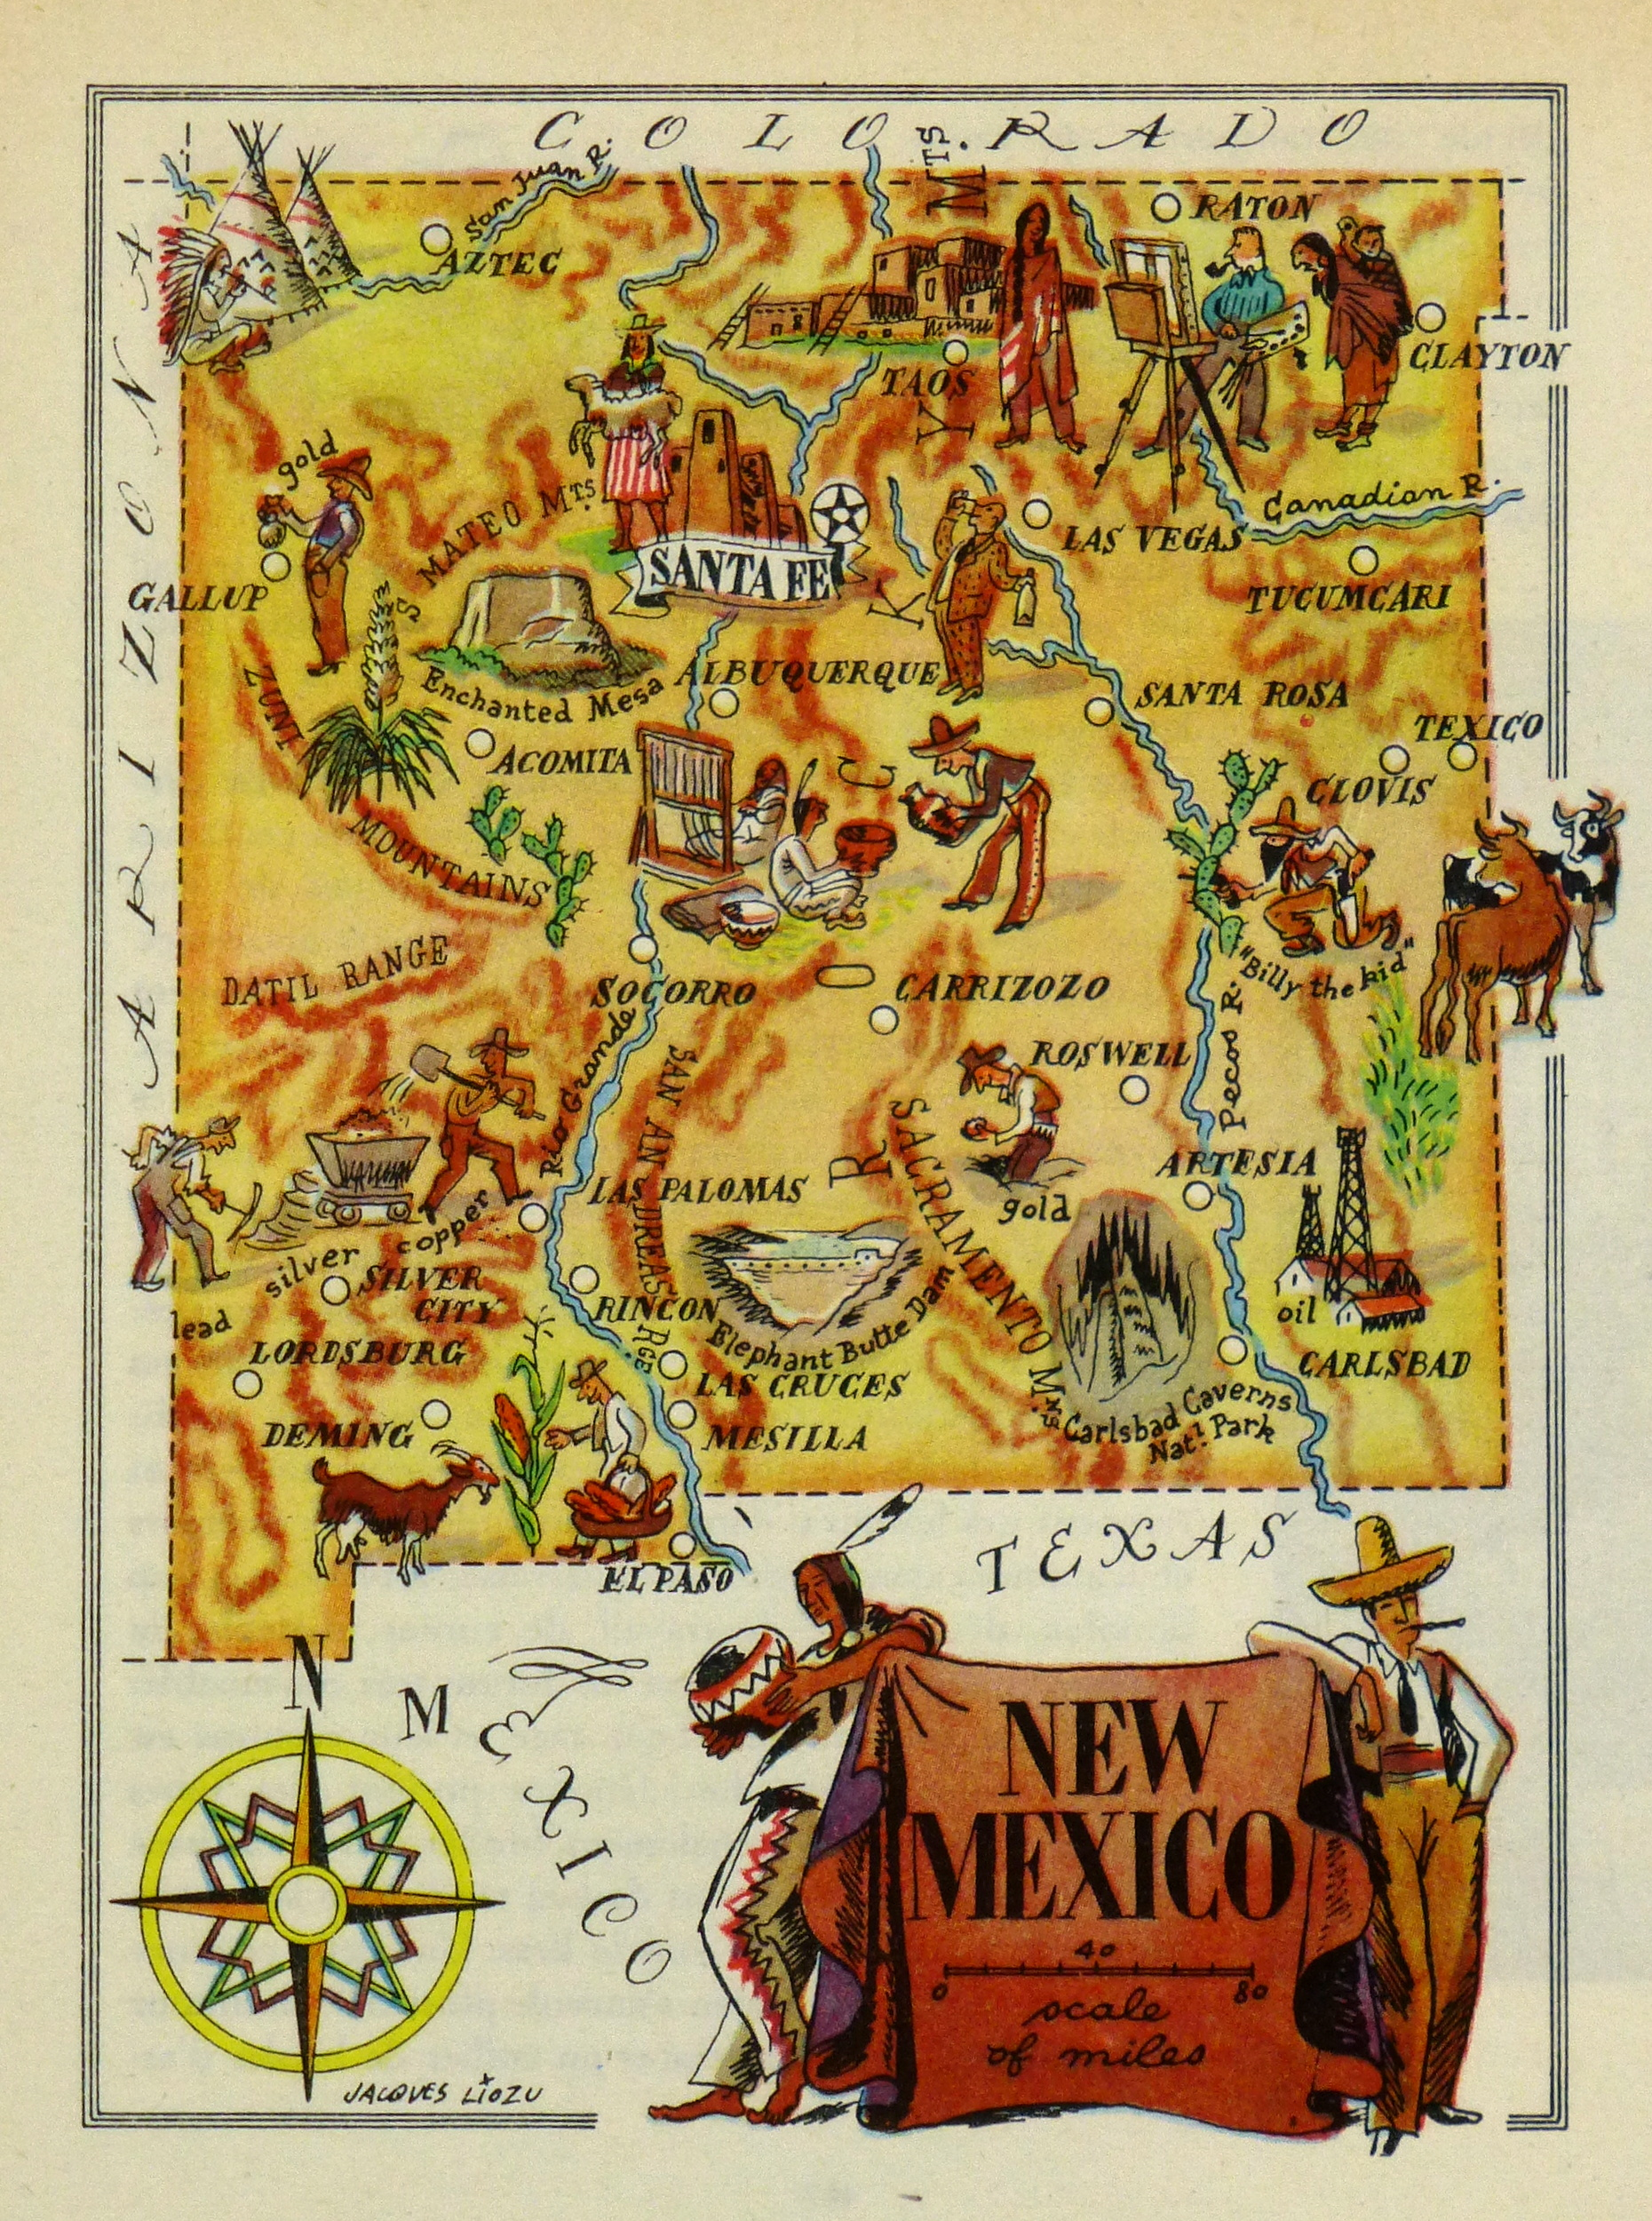 New Mexico Pictorial Map, 1946